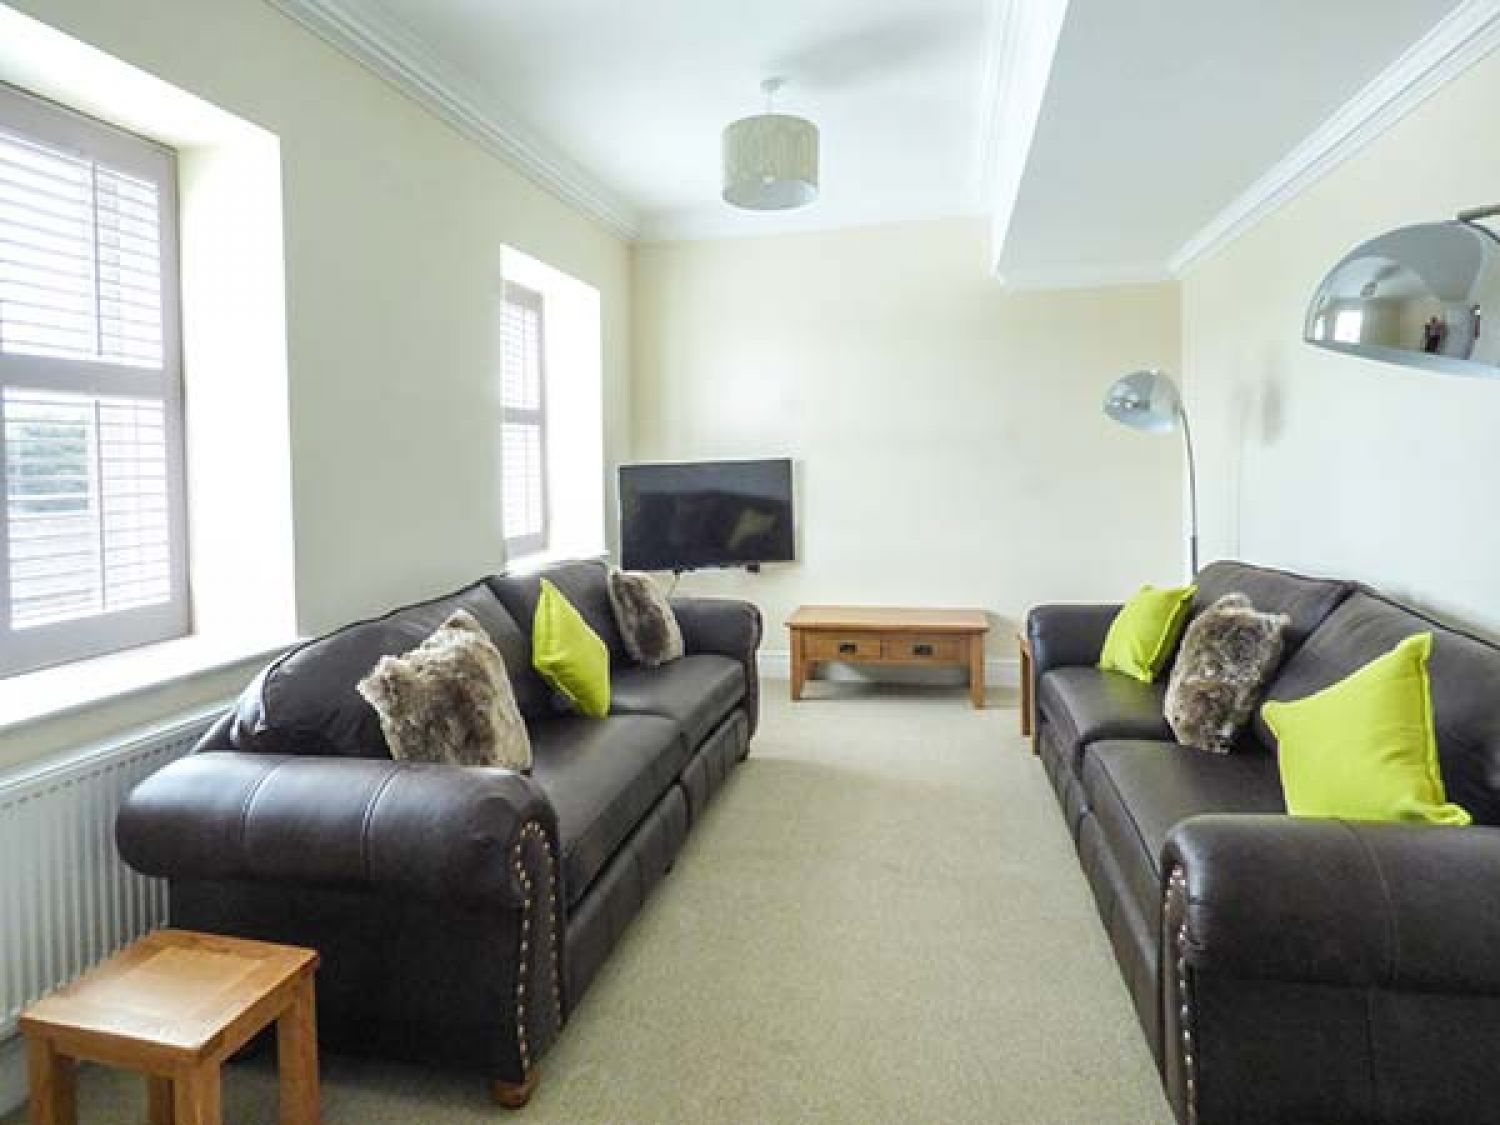 12 Eagle Parade in Buxton - sleeps 8 people